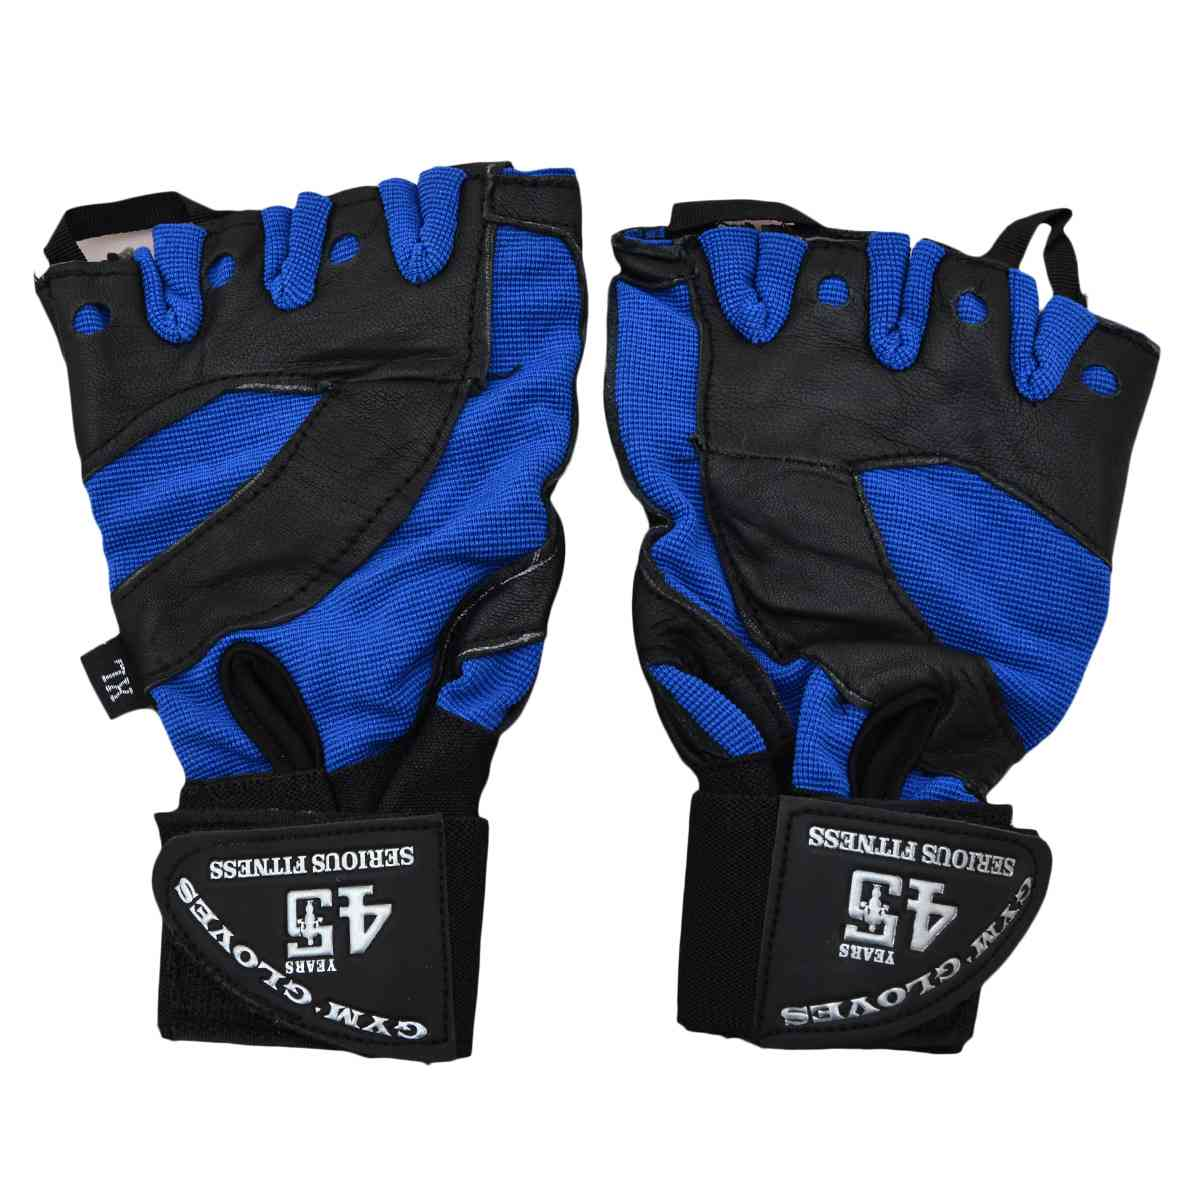 2 Pcs Gym Gloves - Blue